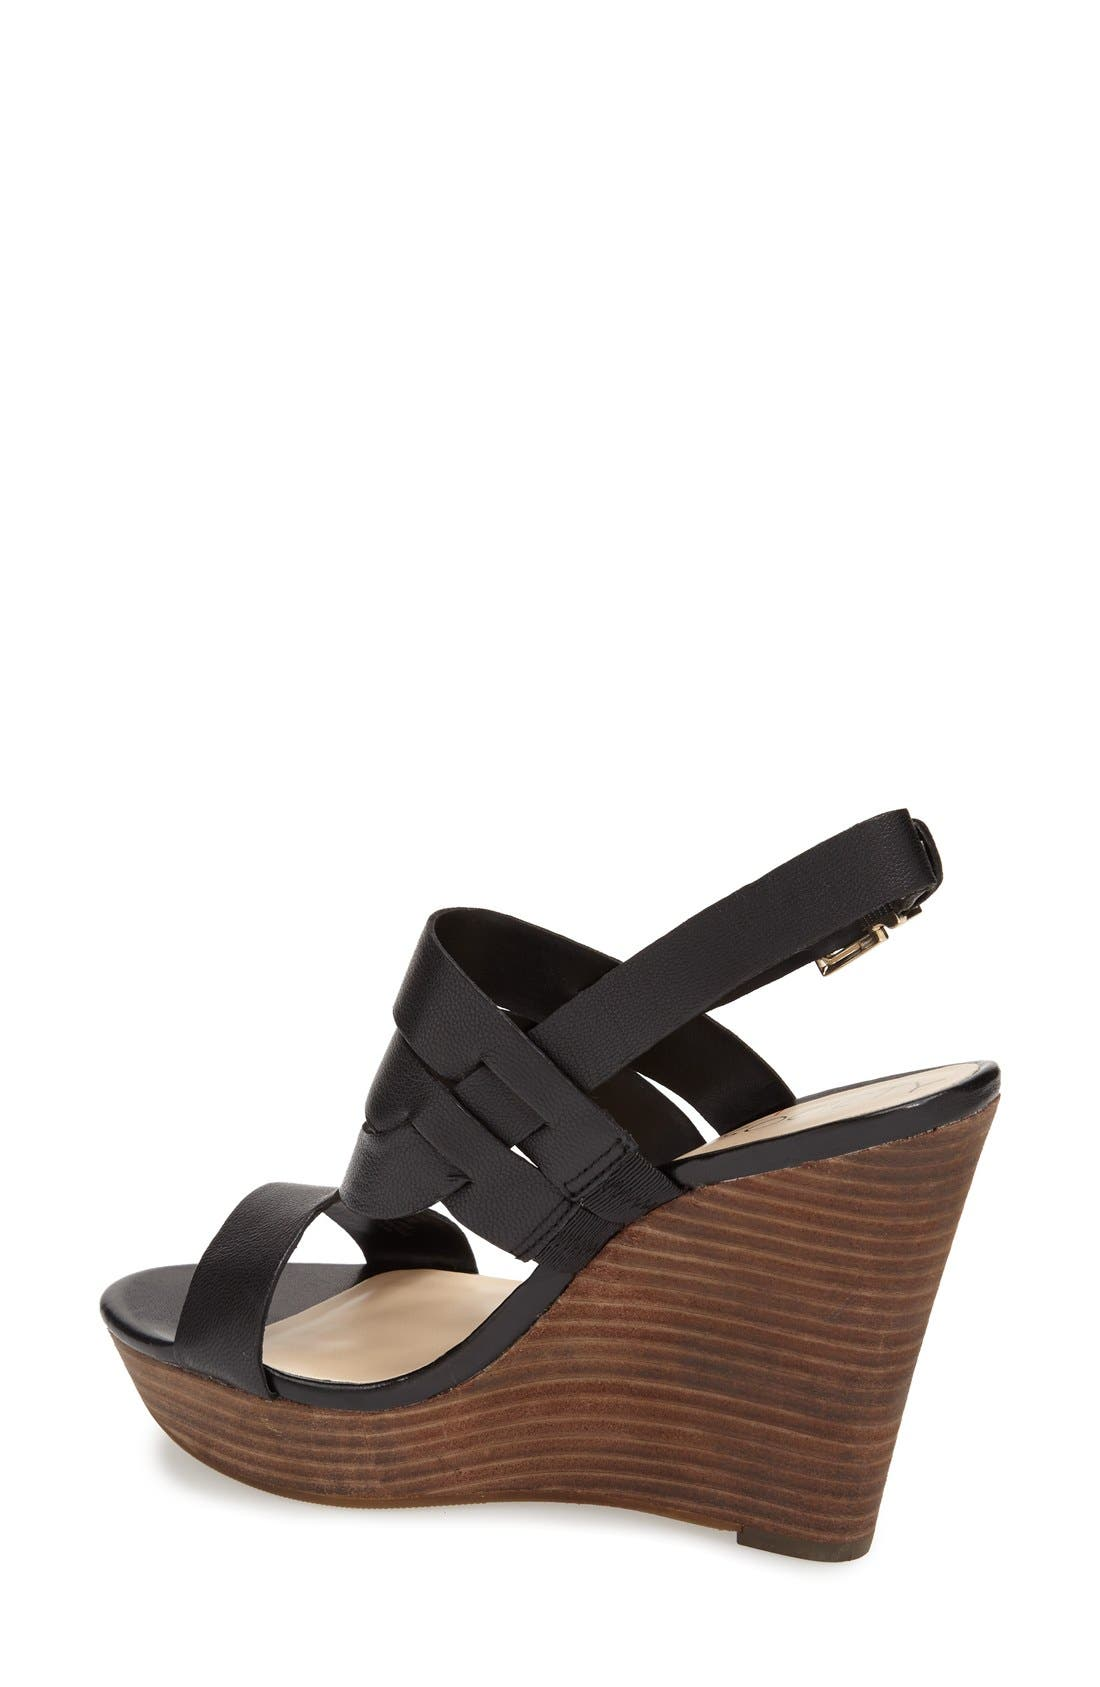 Alternate Image 2  - Sole Society 'Jenny' Slingback Wedge Sandal (Women)